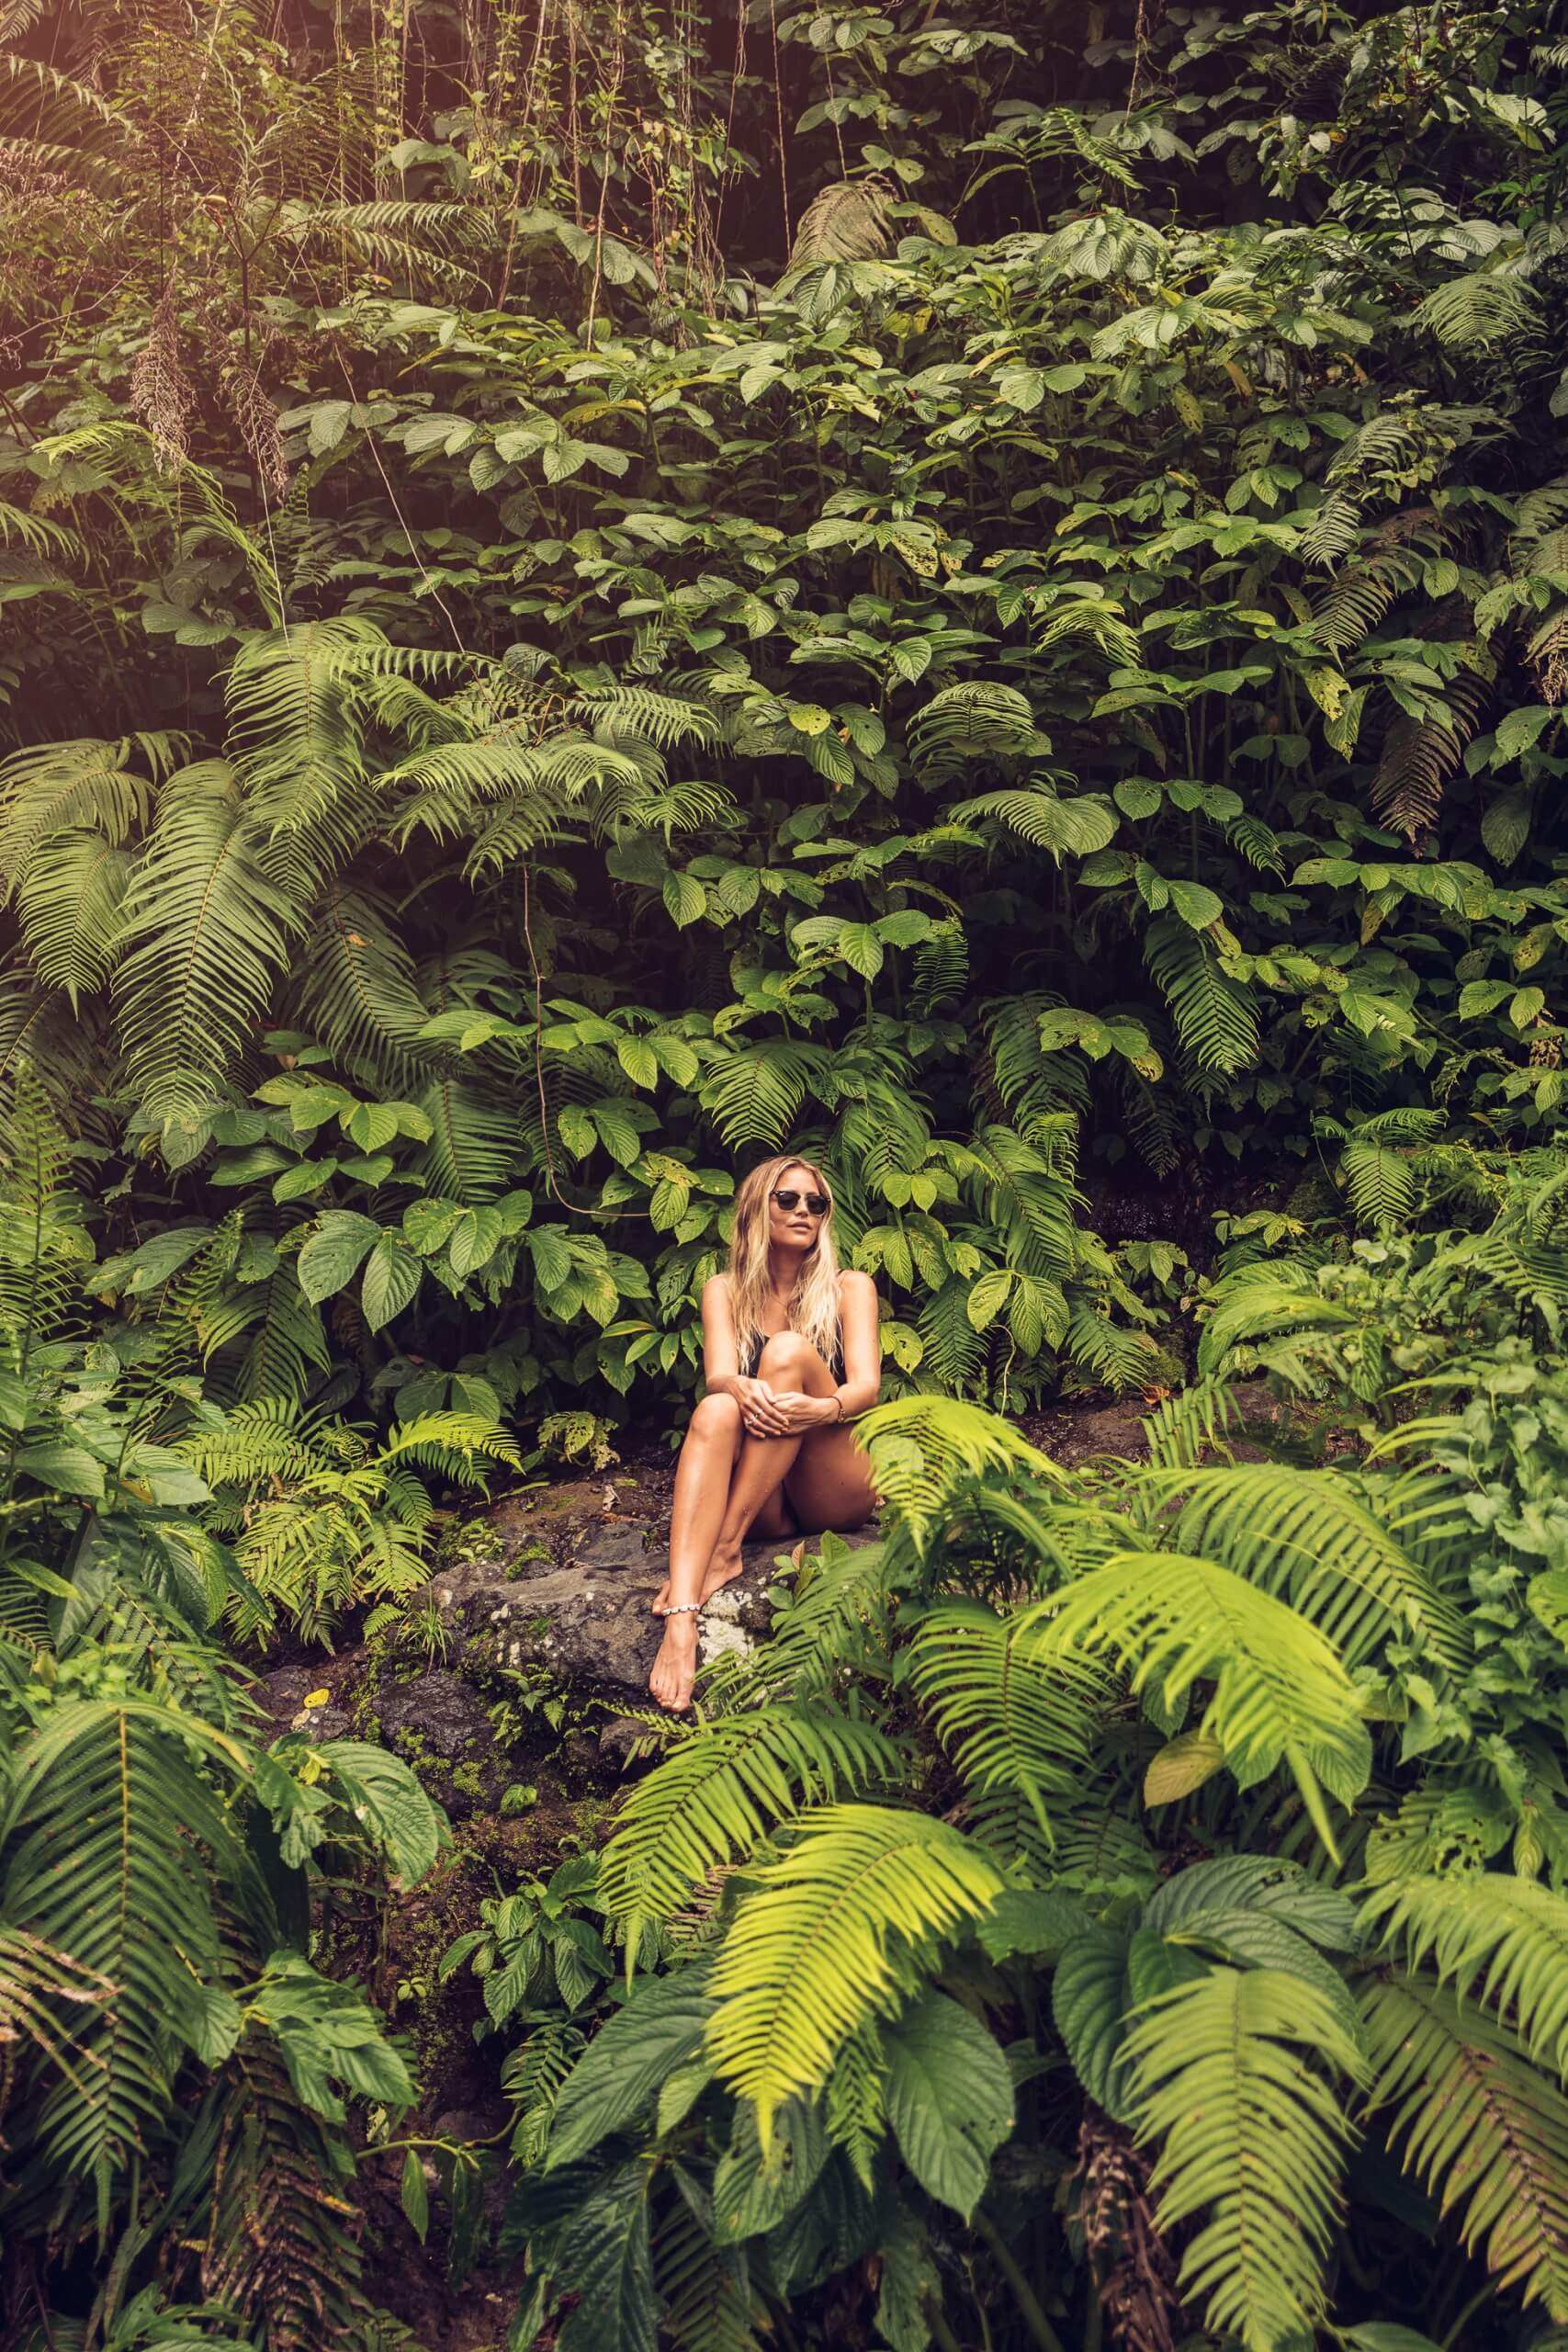 janni-deler-jungle-vibes-lombok-5-of-7